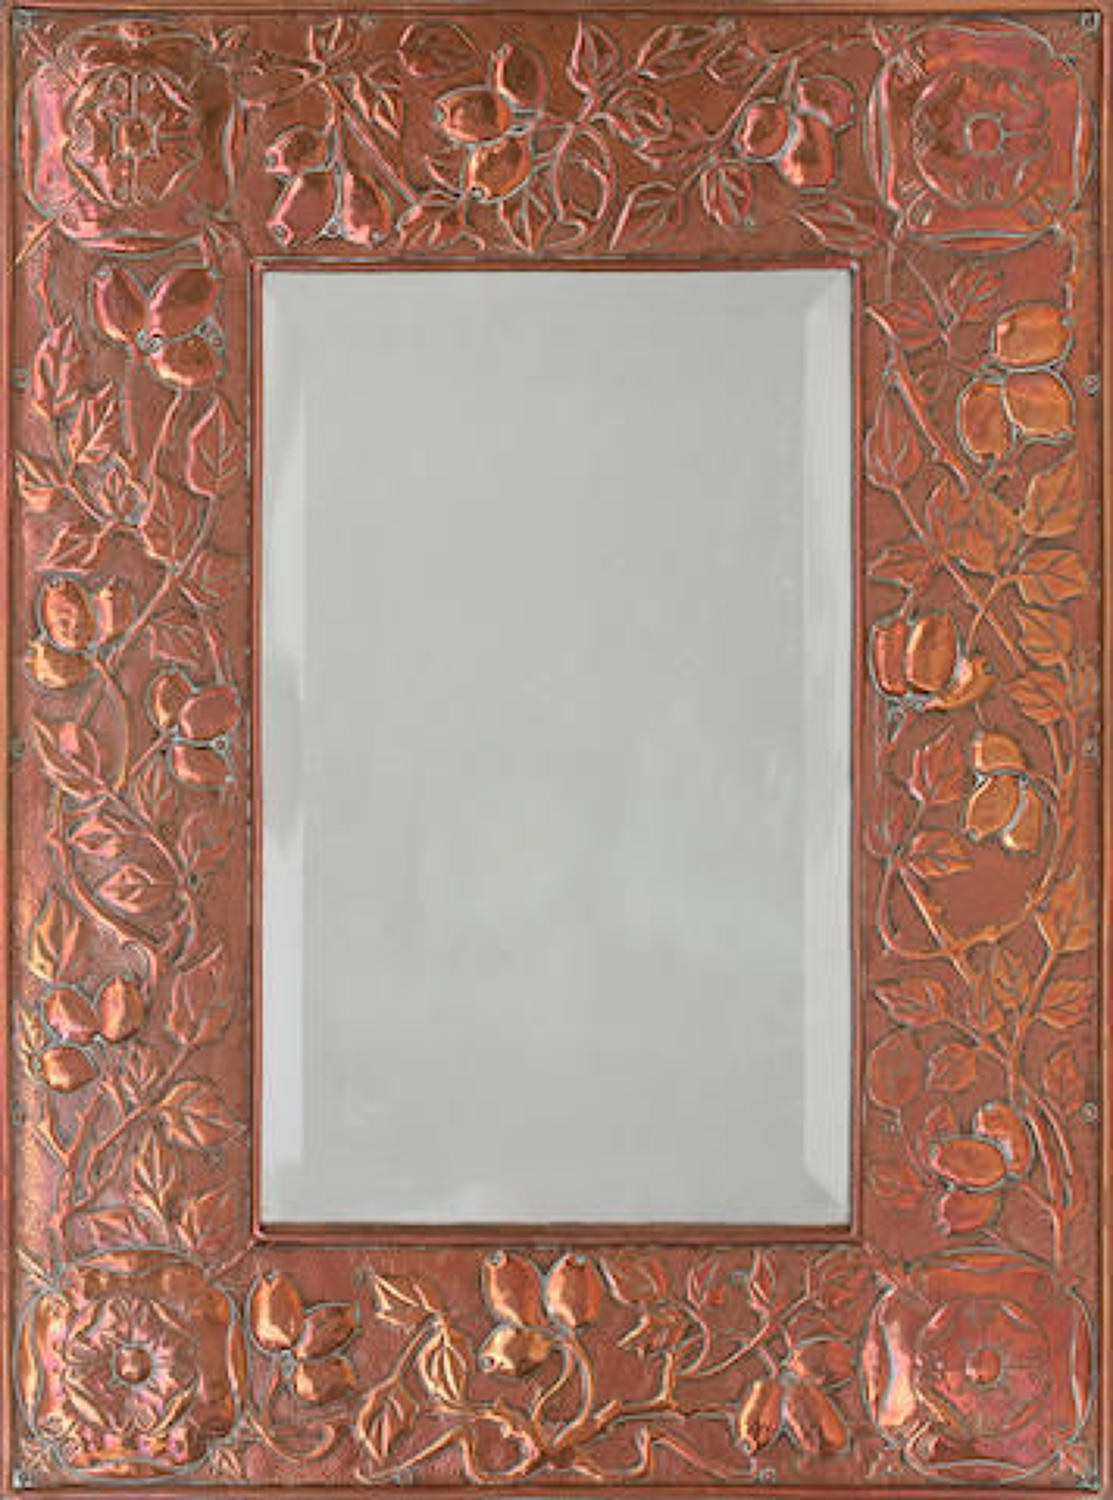 Keswick School of Industrial Art copper framed mirror